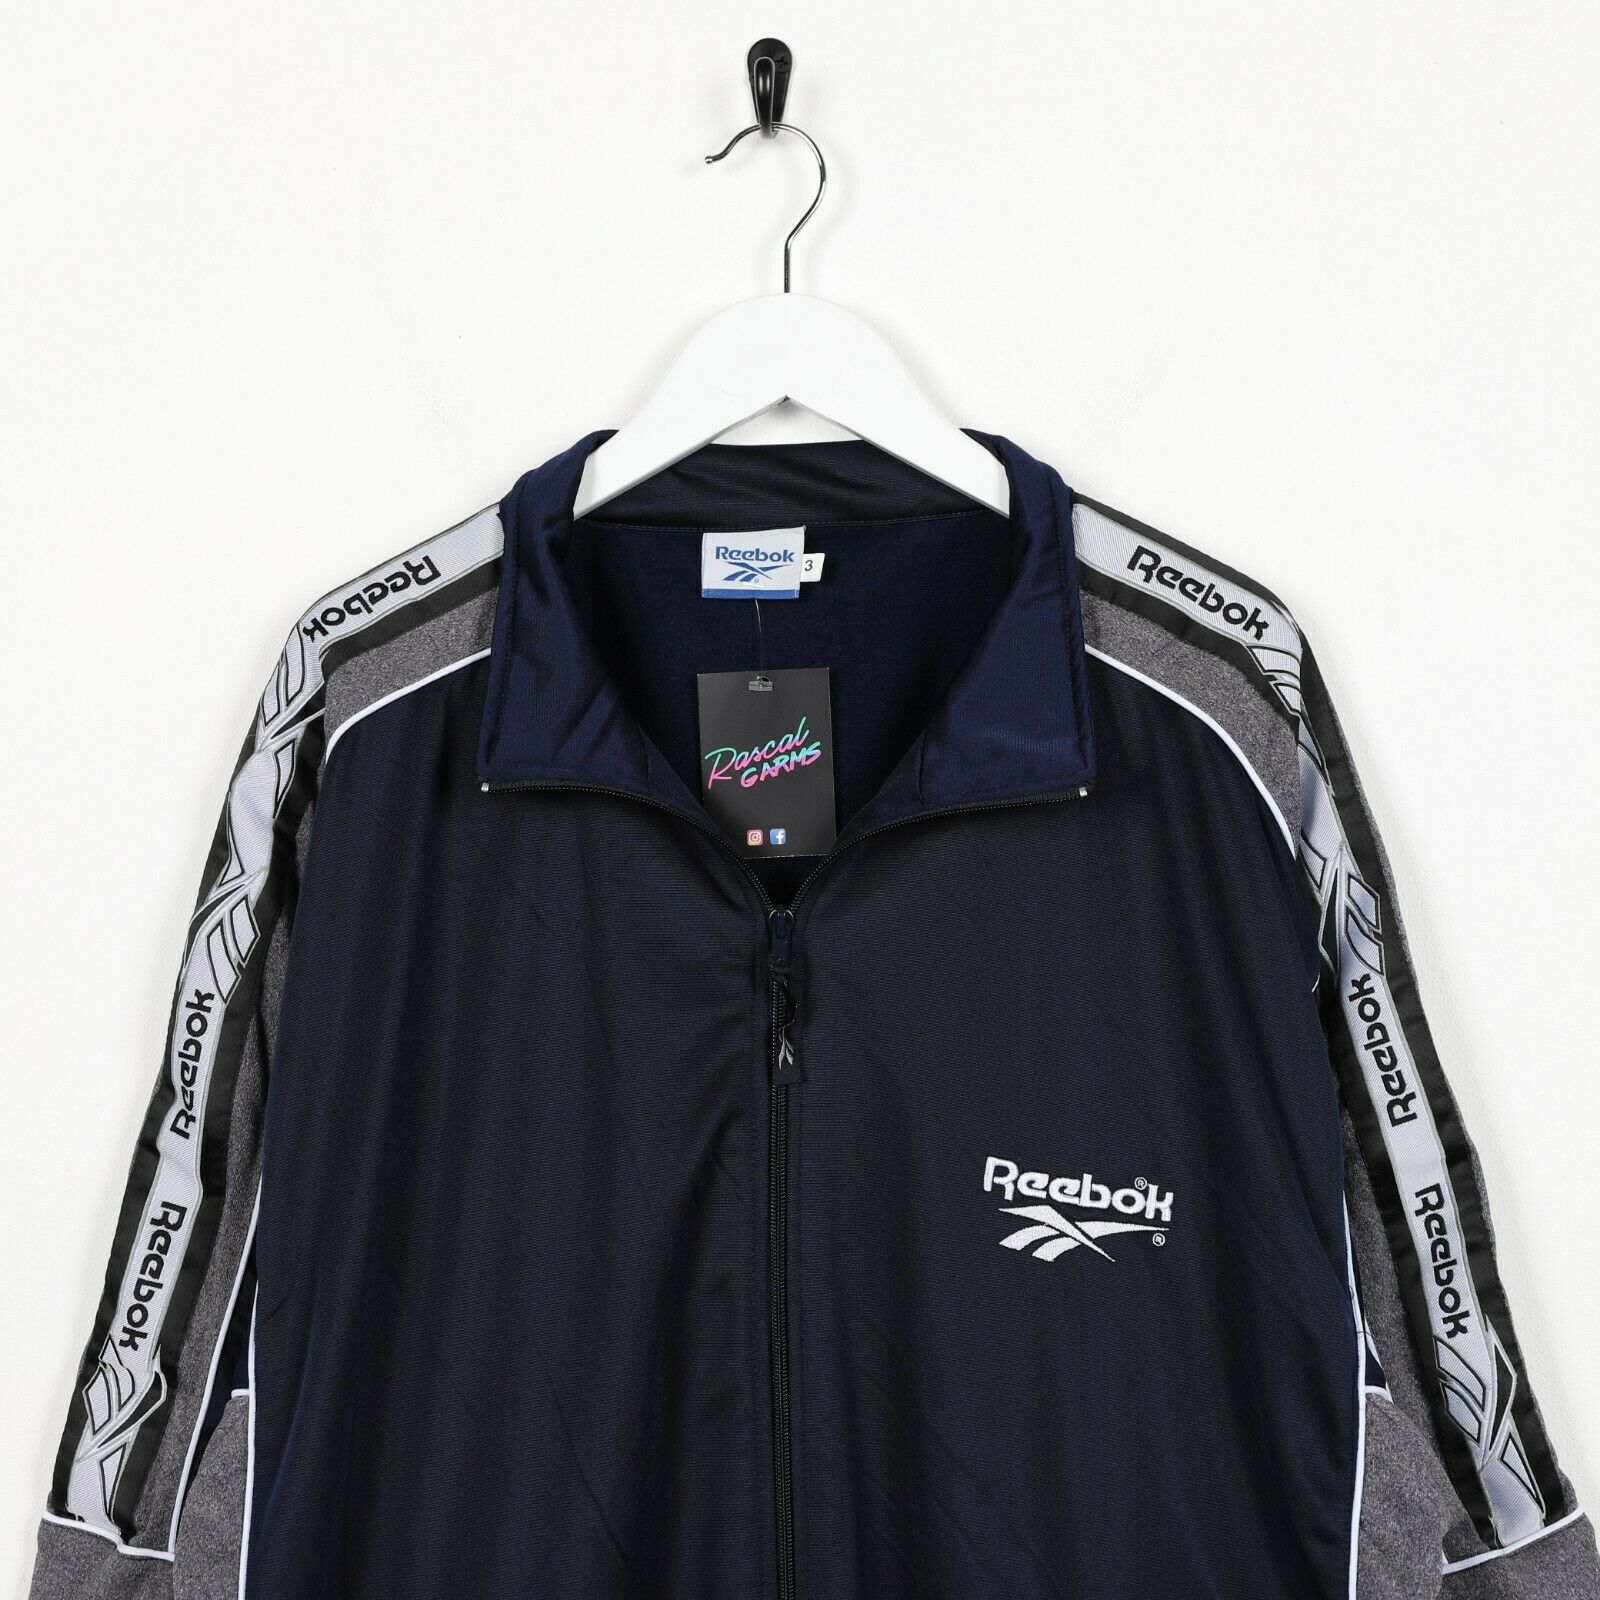 Vintage 90s REEBOK Tape Arm Logo Tracksuit Top Jacket Navy Blue Grey | XL